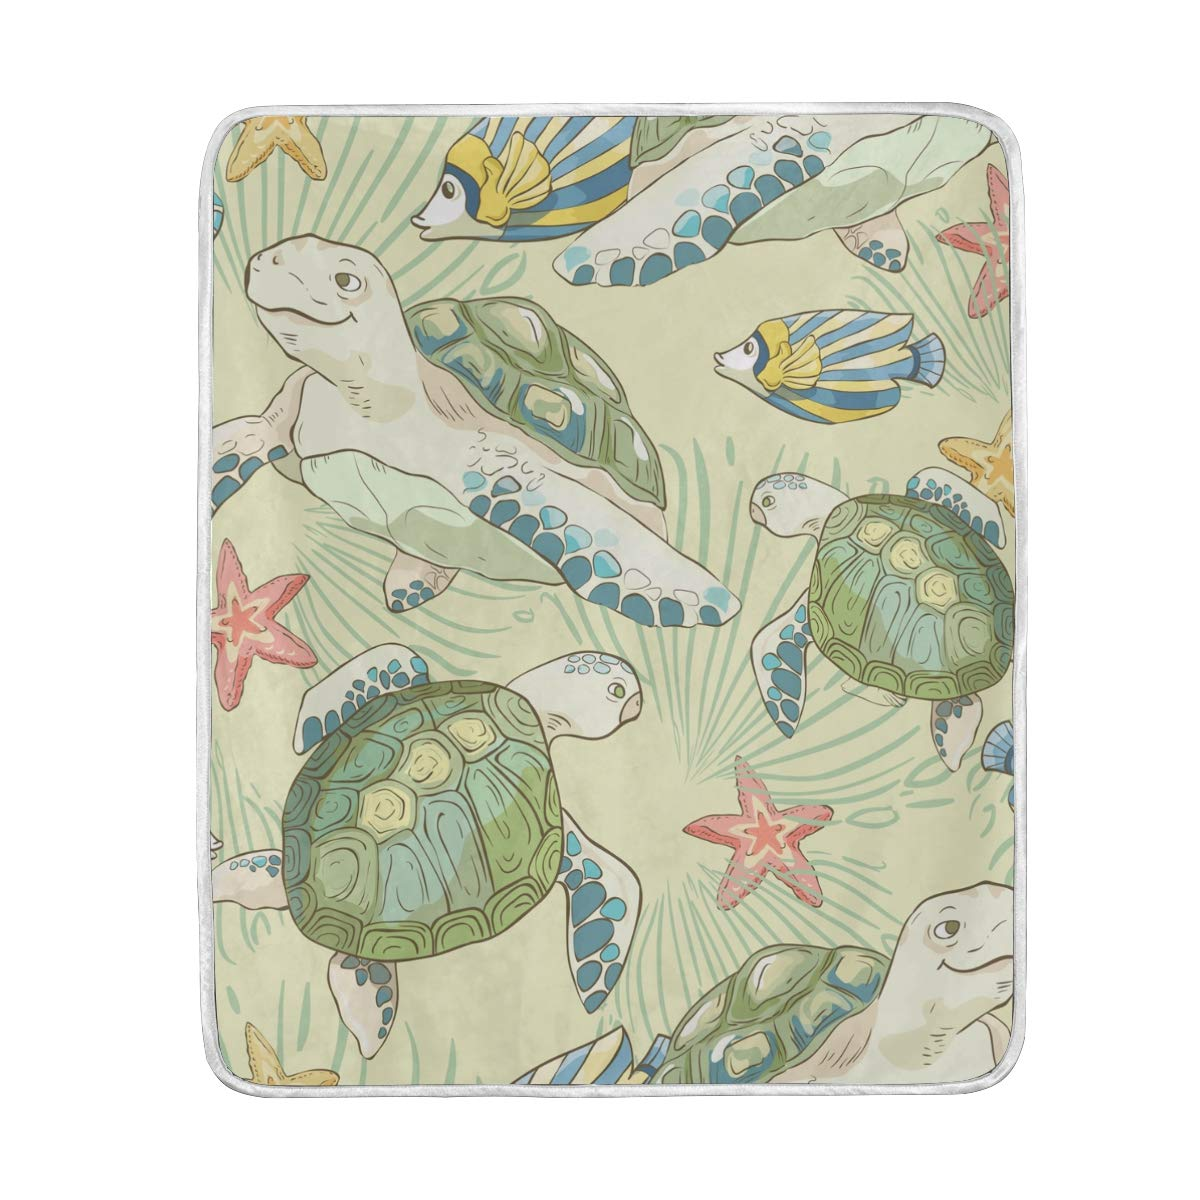 ALAZA Seasonal Quilt Ocean Marine Life Turtle and Starfish Crystal Velvet Throw Blanket for Bed 50 x 60 inch Kids Baby Girls Colorful Painting Couch Blanket Throw Decor